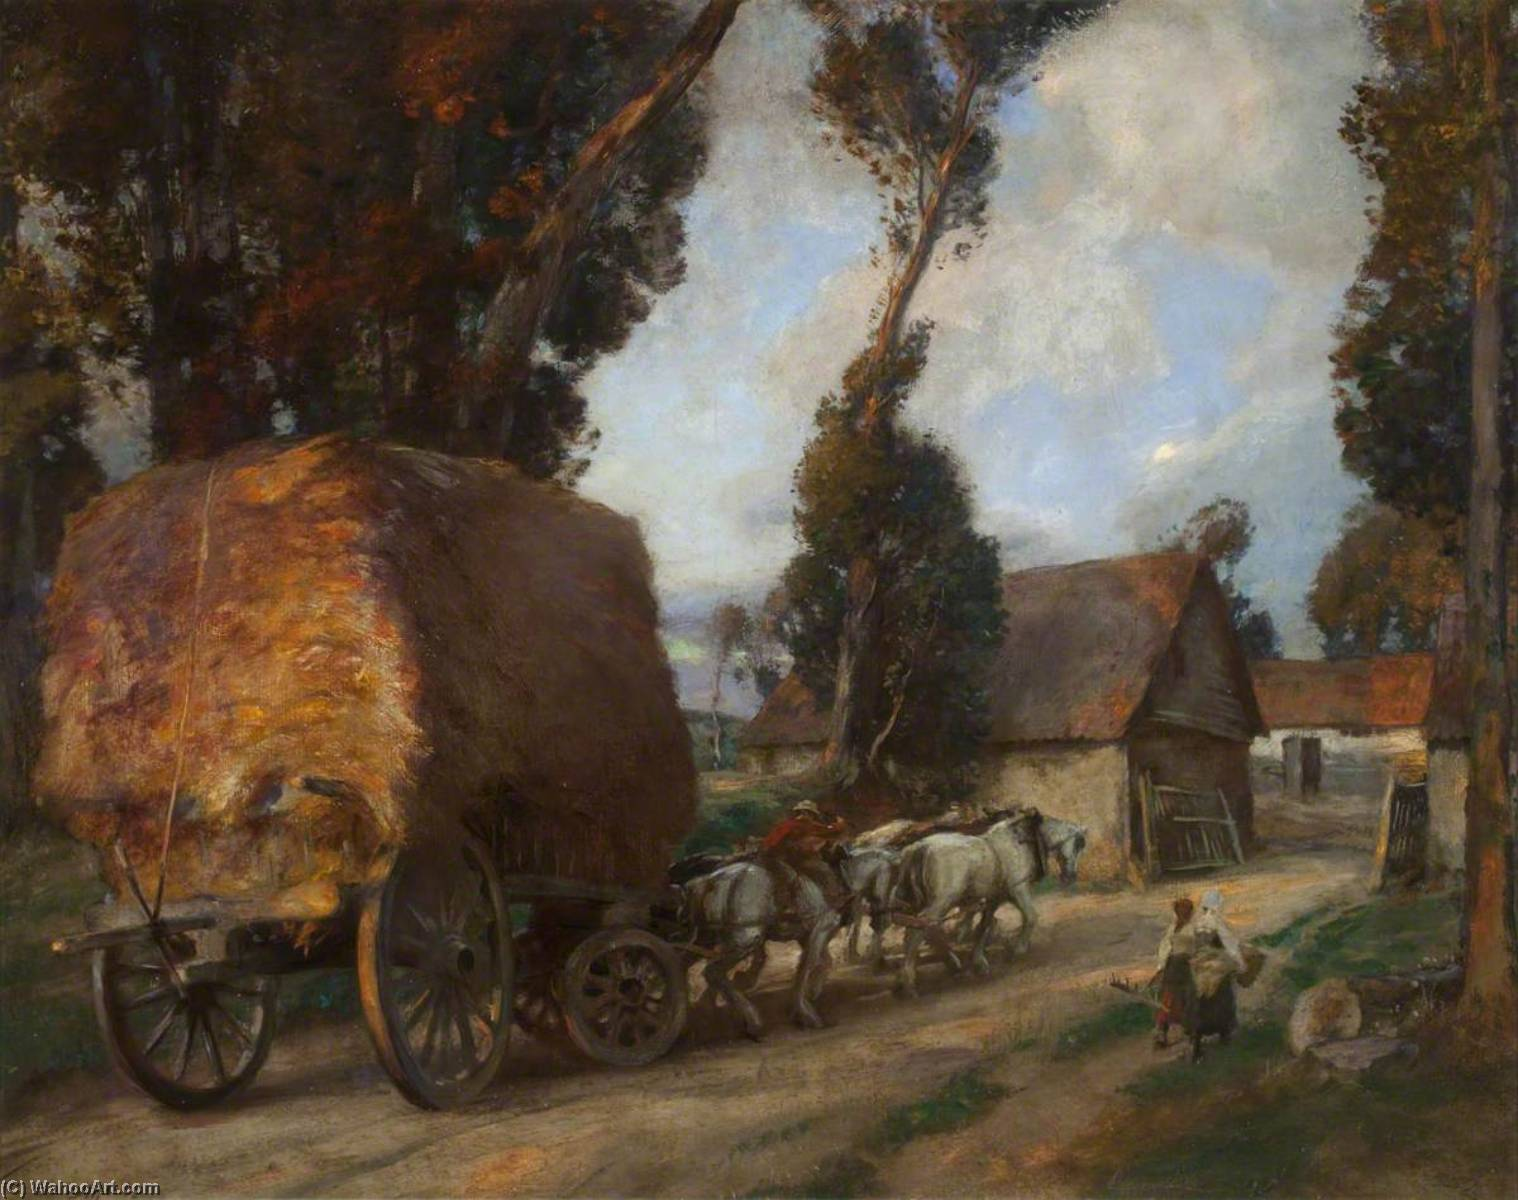 The Hay Cart, Oil On Canvas by Charles Hodge Mackie